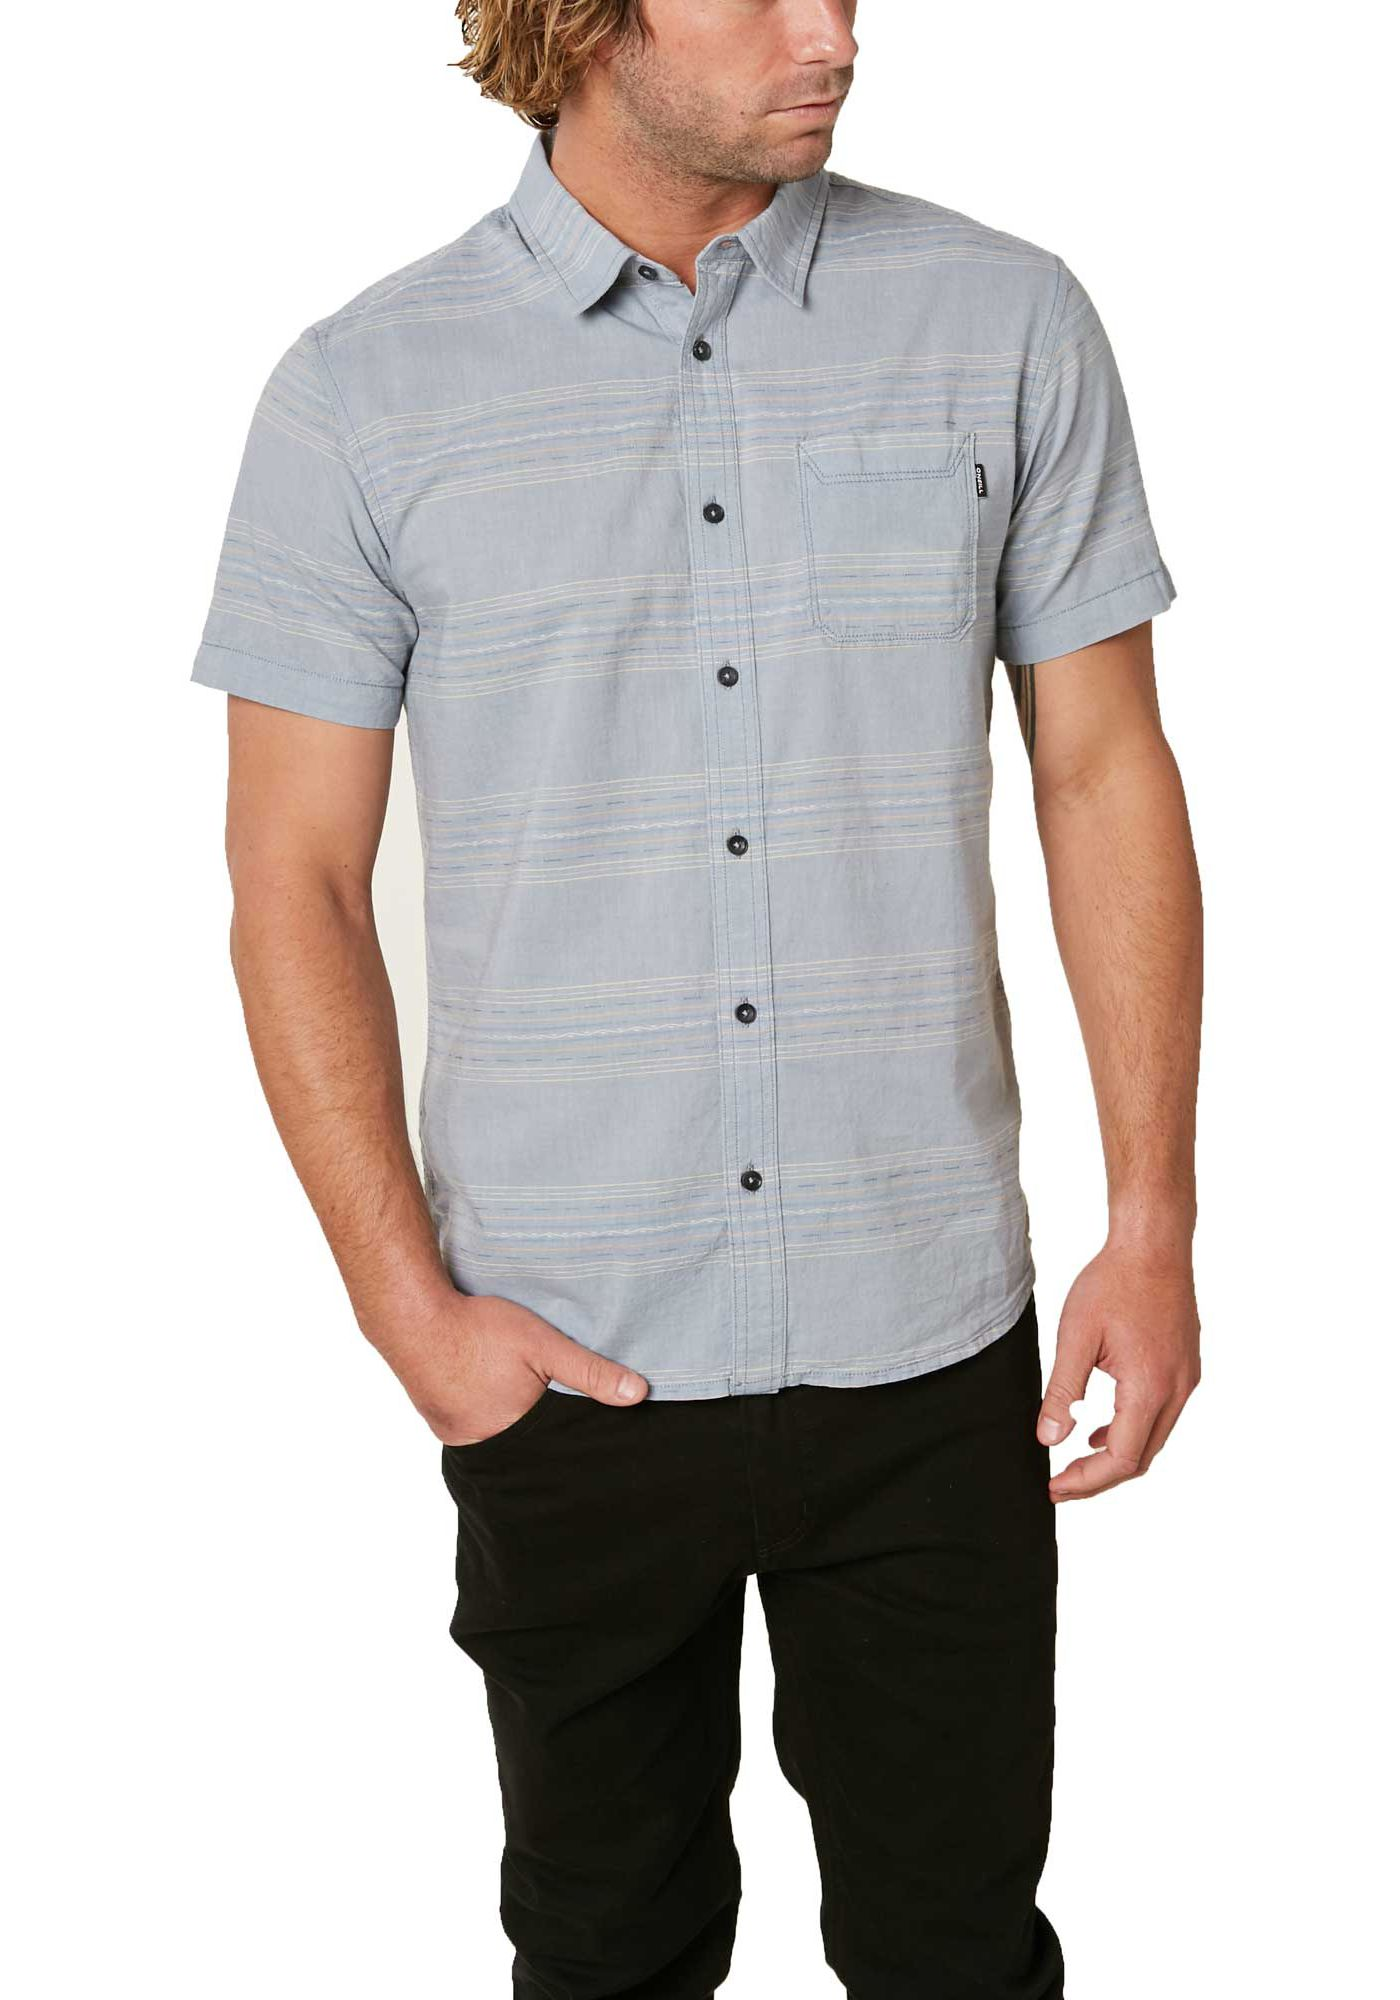 O'Neill Men's Pico Stripe Woven Button Down Shirt